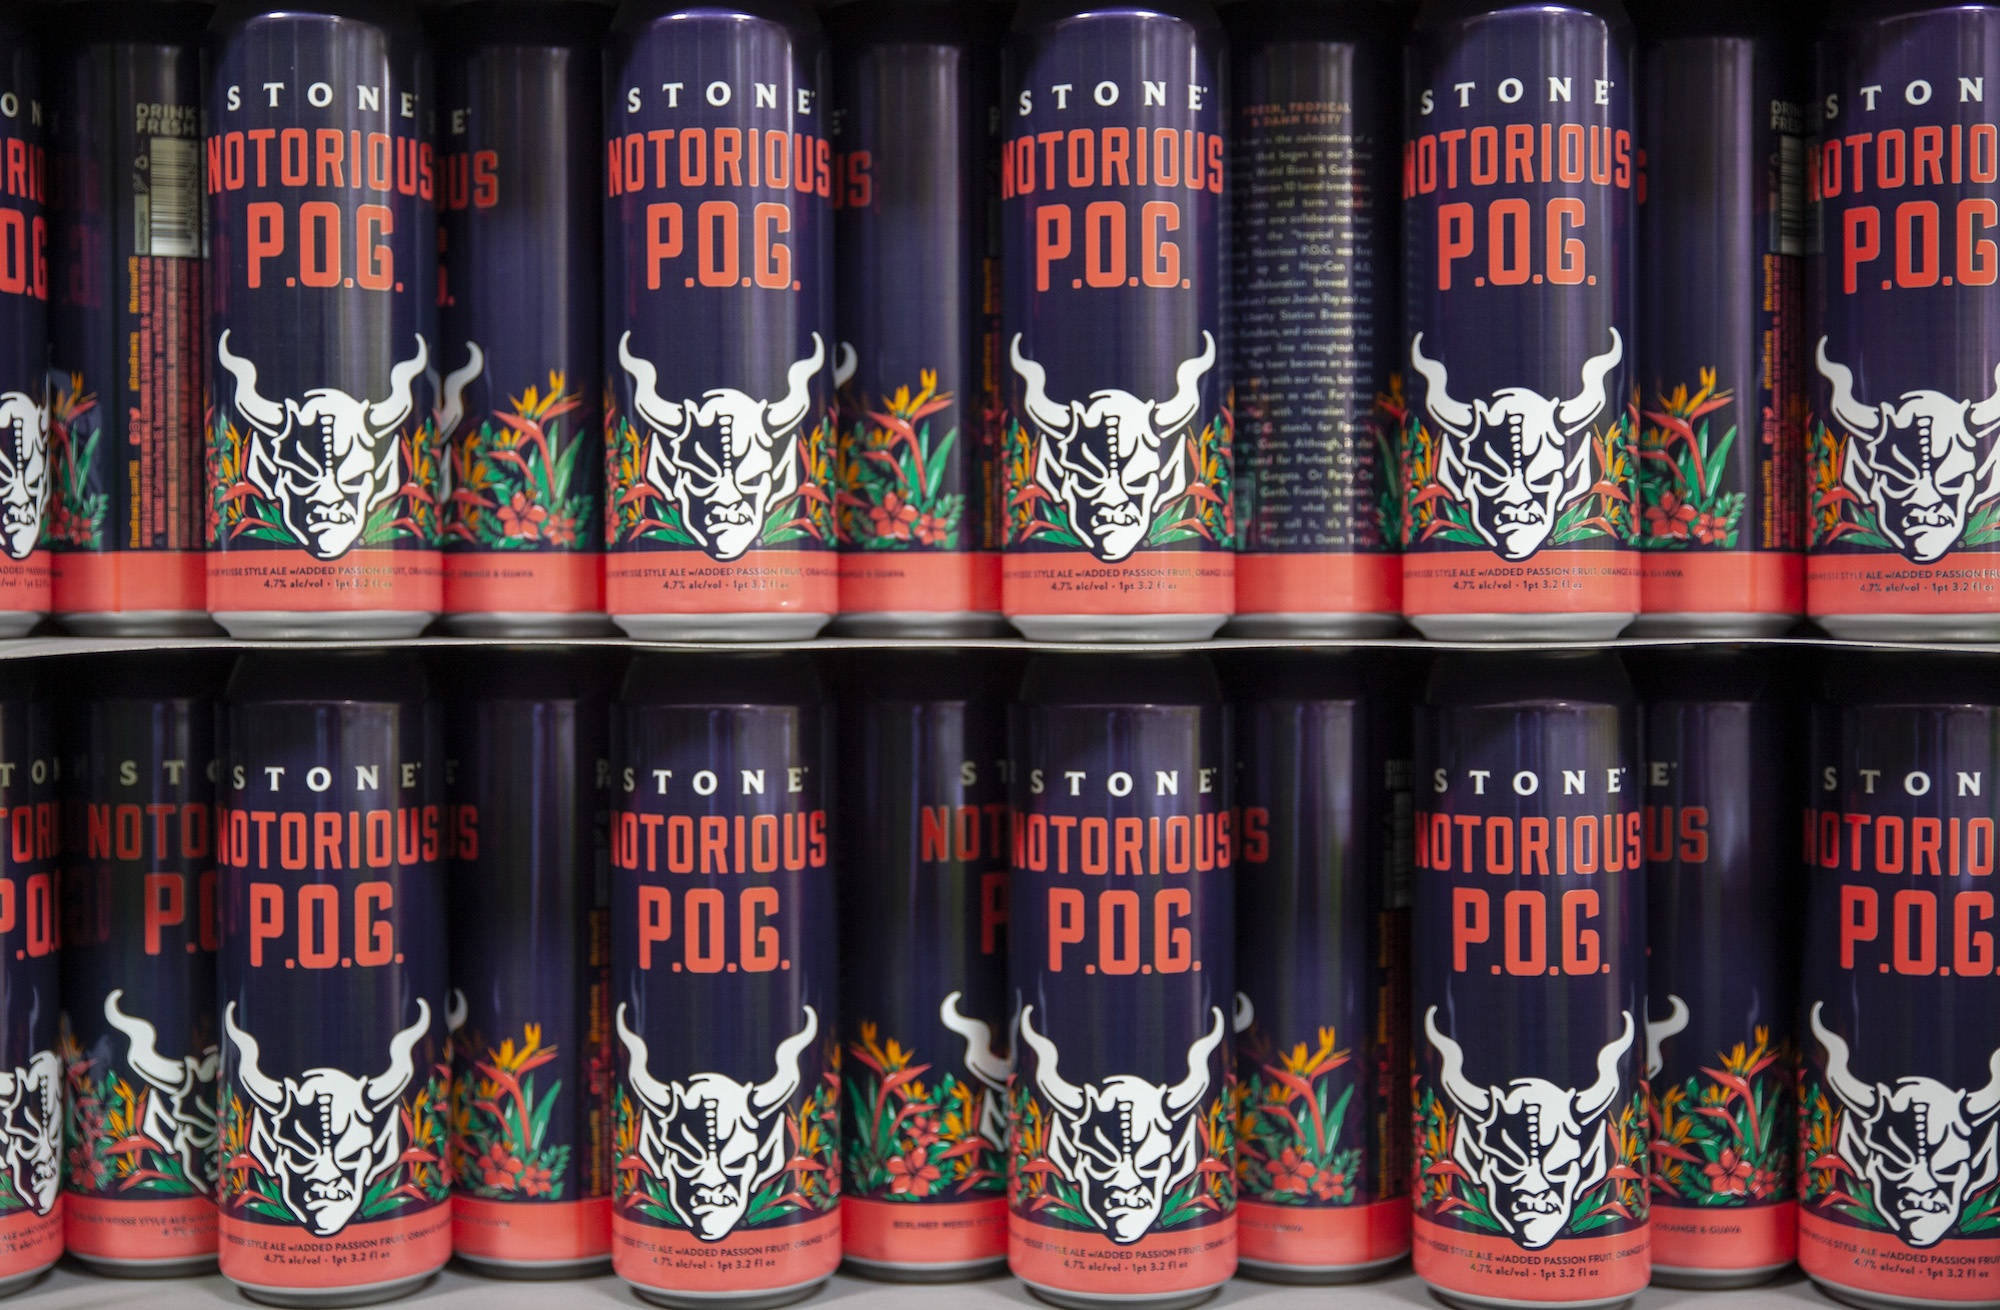 Stone Notorious P.O.G. Berliner Weisse Available Now